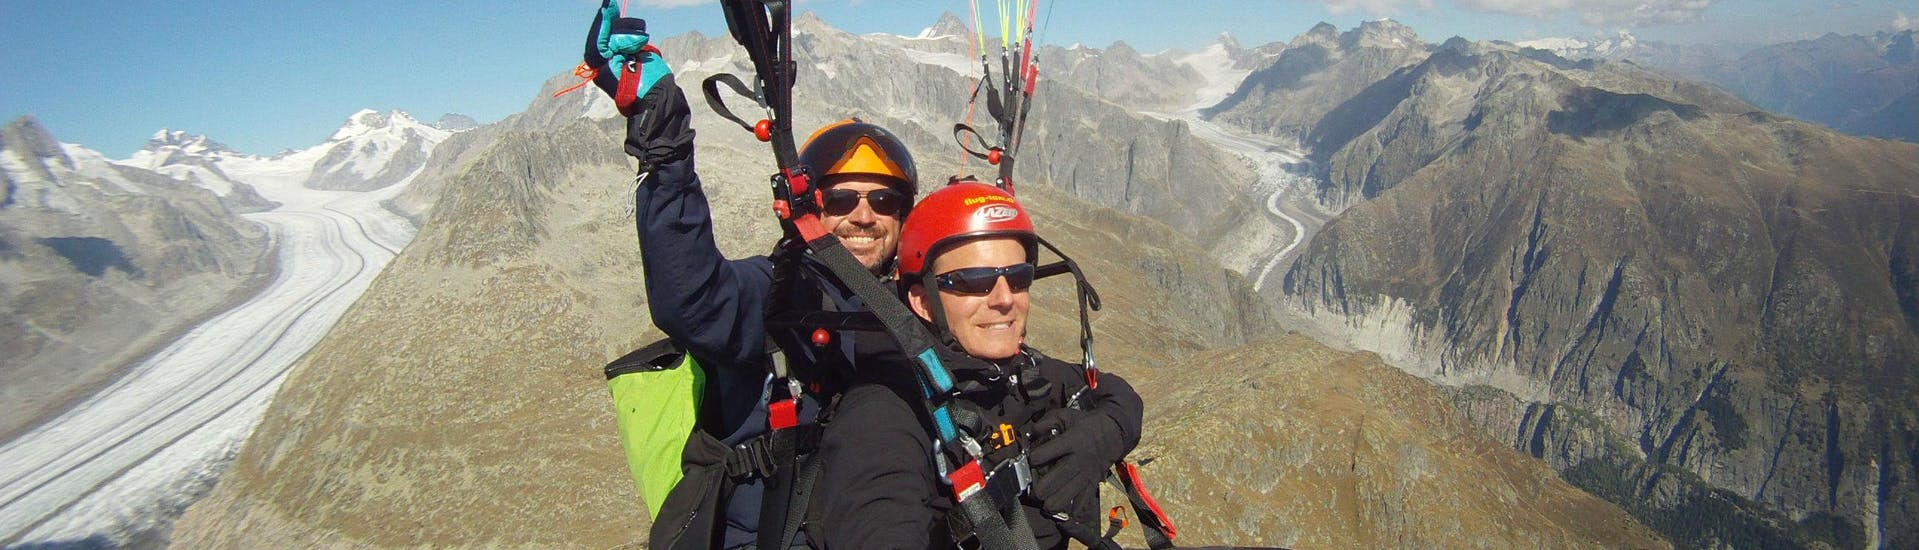 Tandem Paragliding over the Aletsch Arena - High Fly